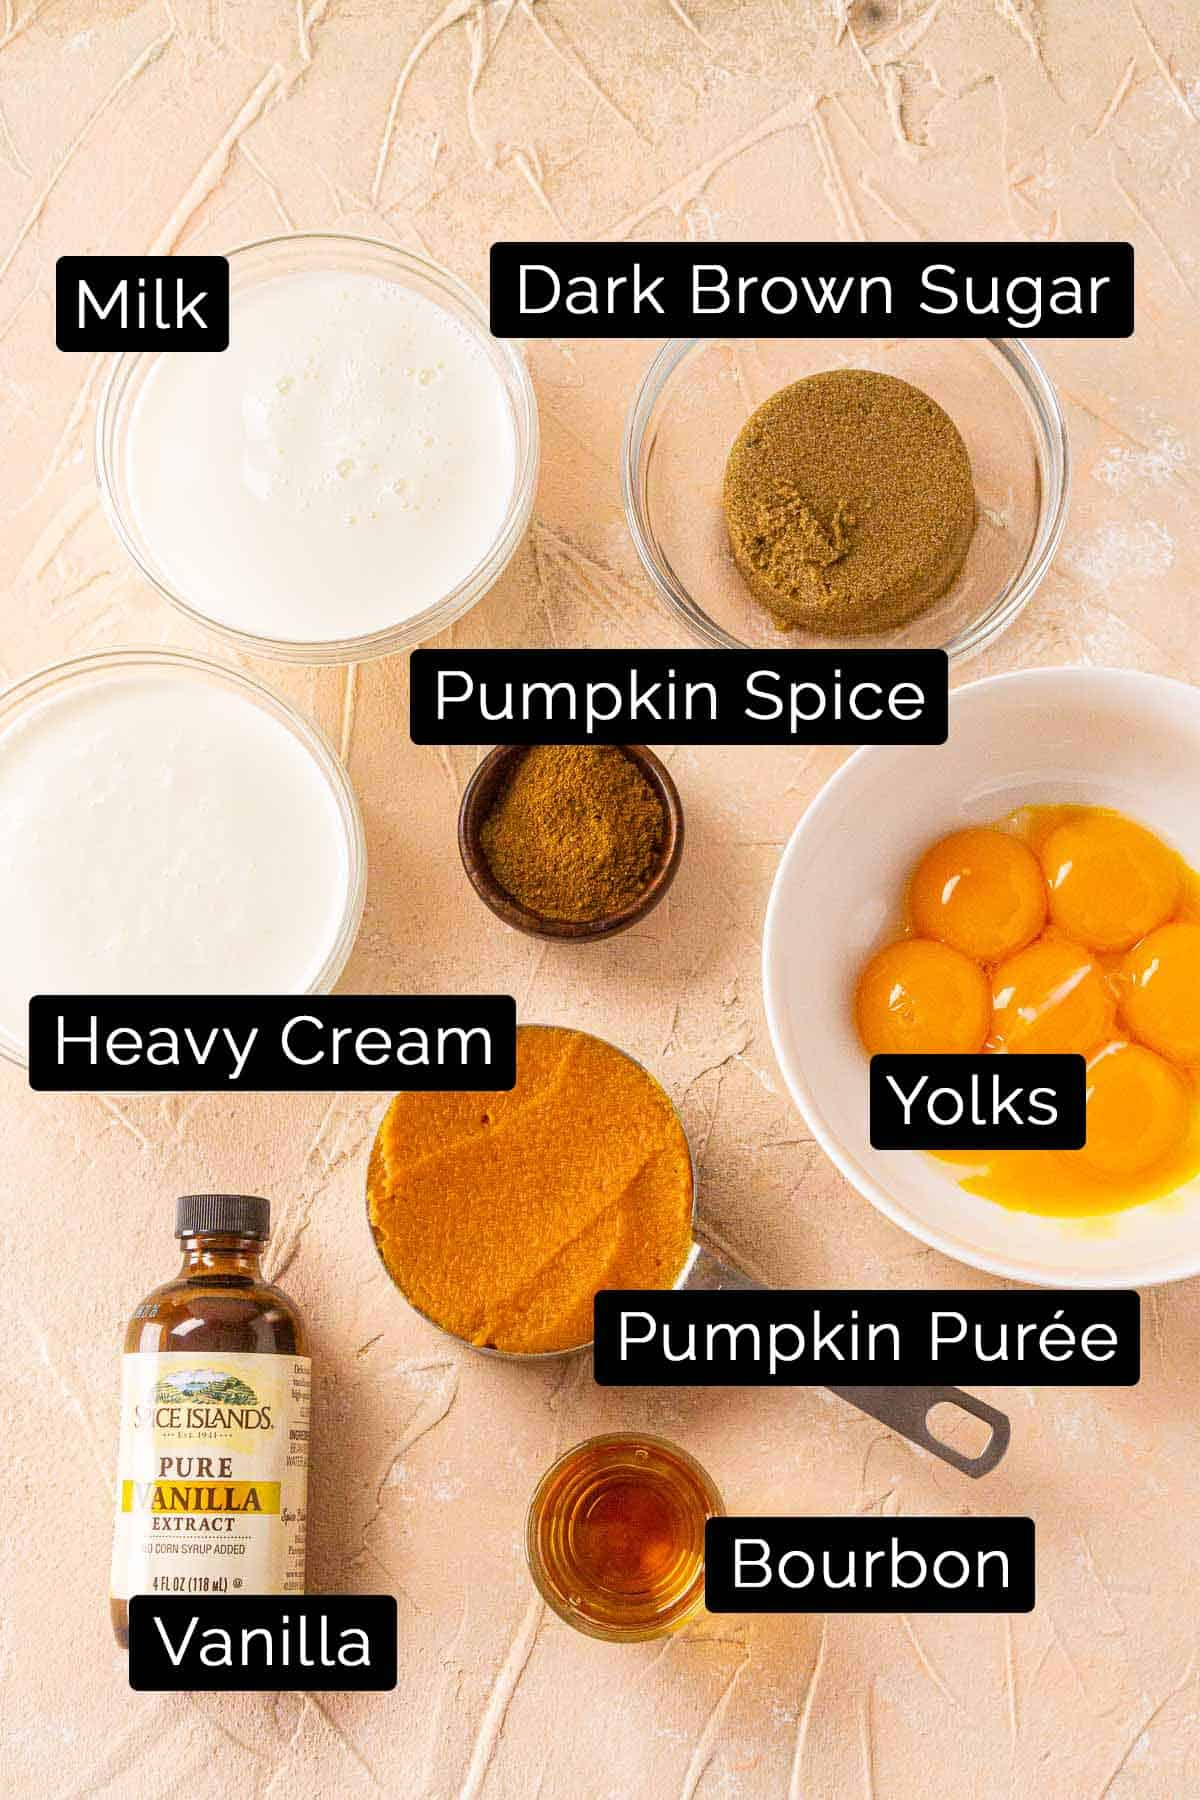 The pumpkin ice cream ingredients with black and white labels on a textured board.